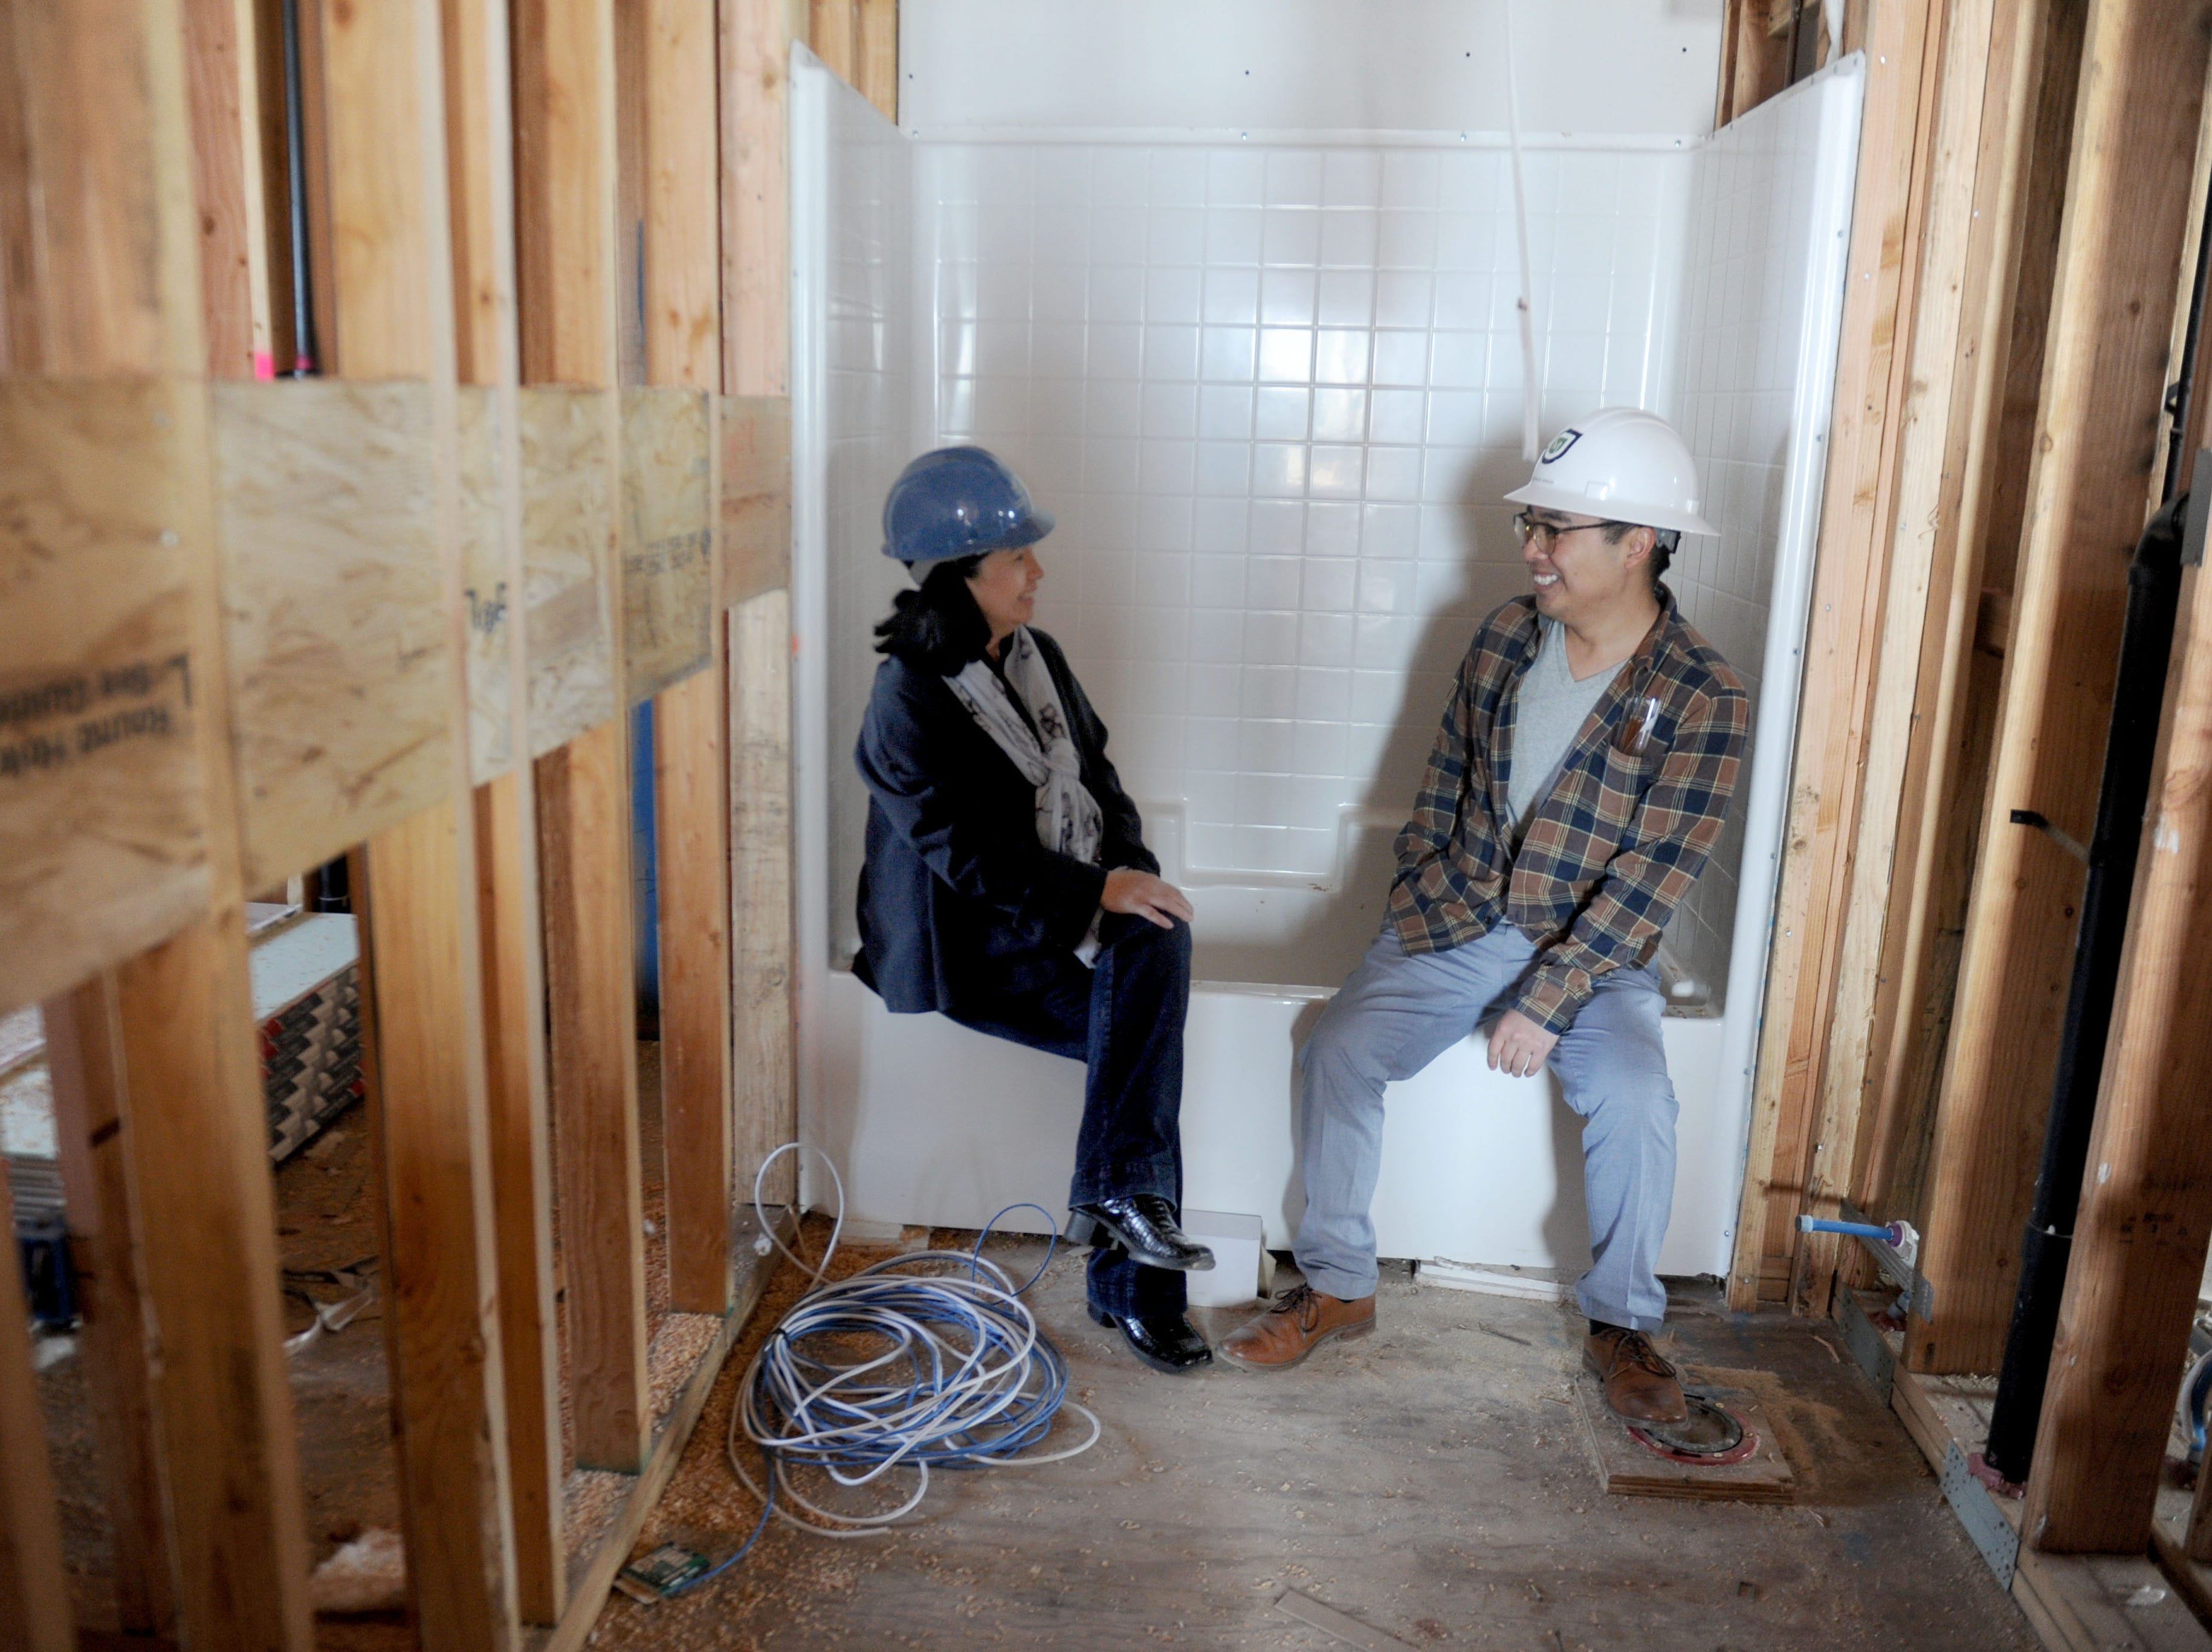 From left, Bambi Hosaka, public relations and marketing manager for Many Mansions, and Derrick Wada, project manager for the Ormond Beach project, talk inside a future bathroom at the veterans housing complex that's under construction in Oxnard. Many Mansions is a local provider of affordable housing.